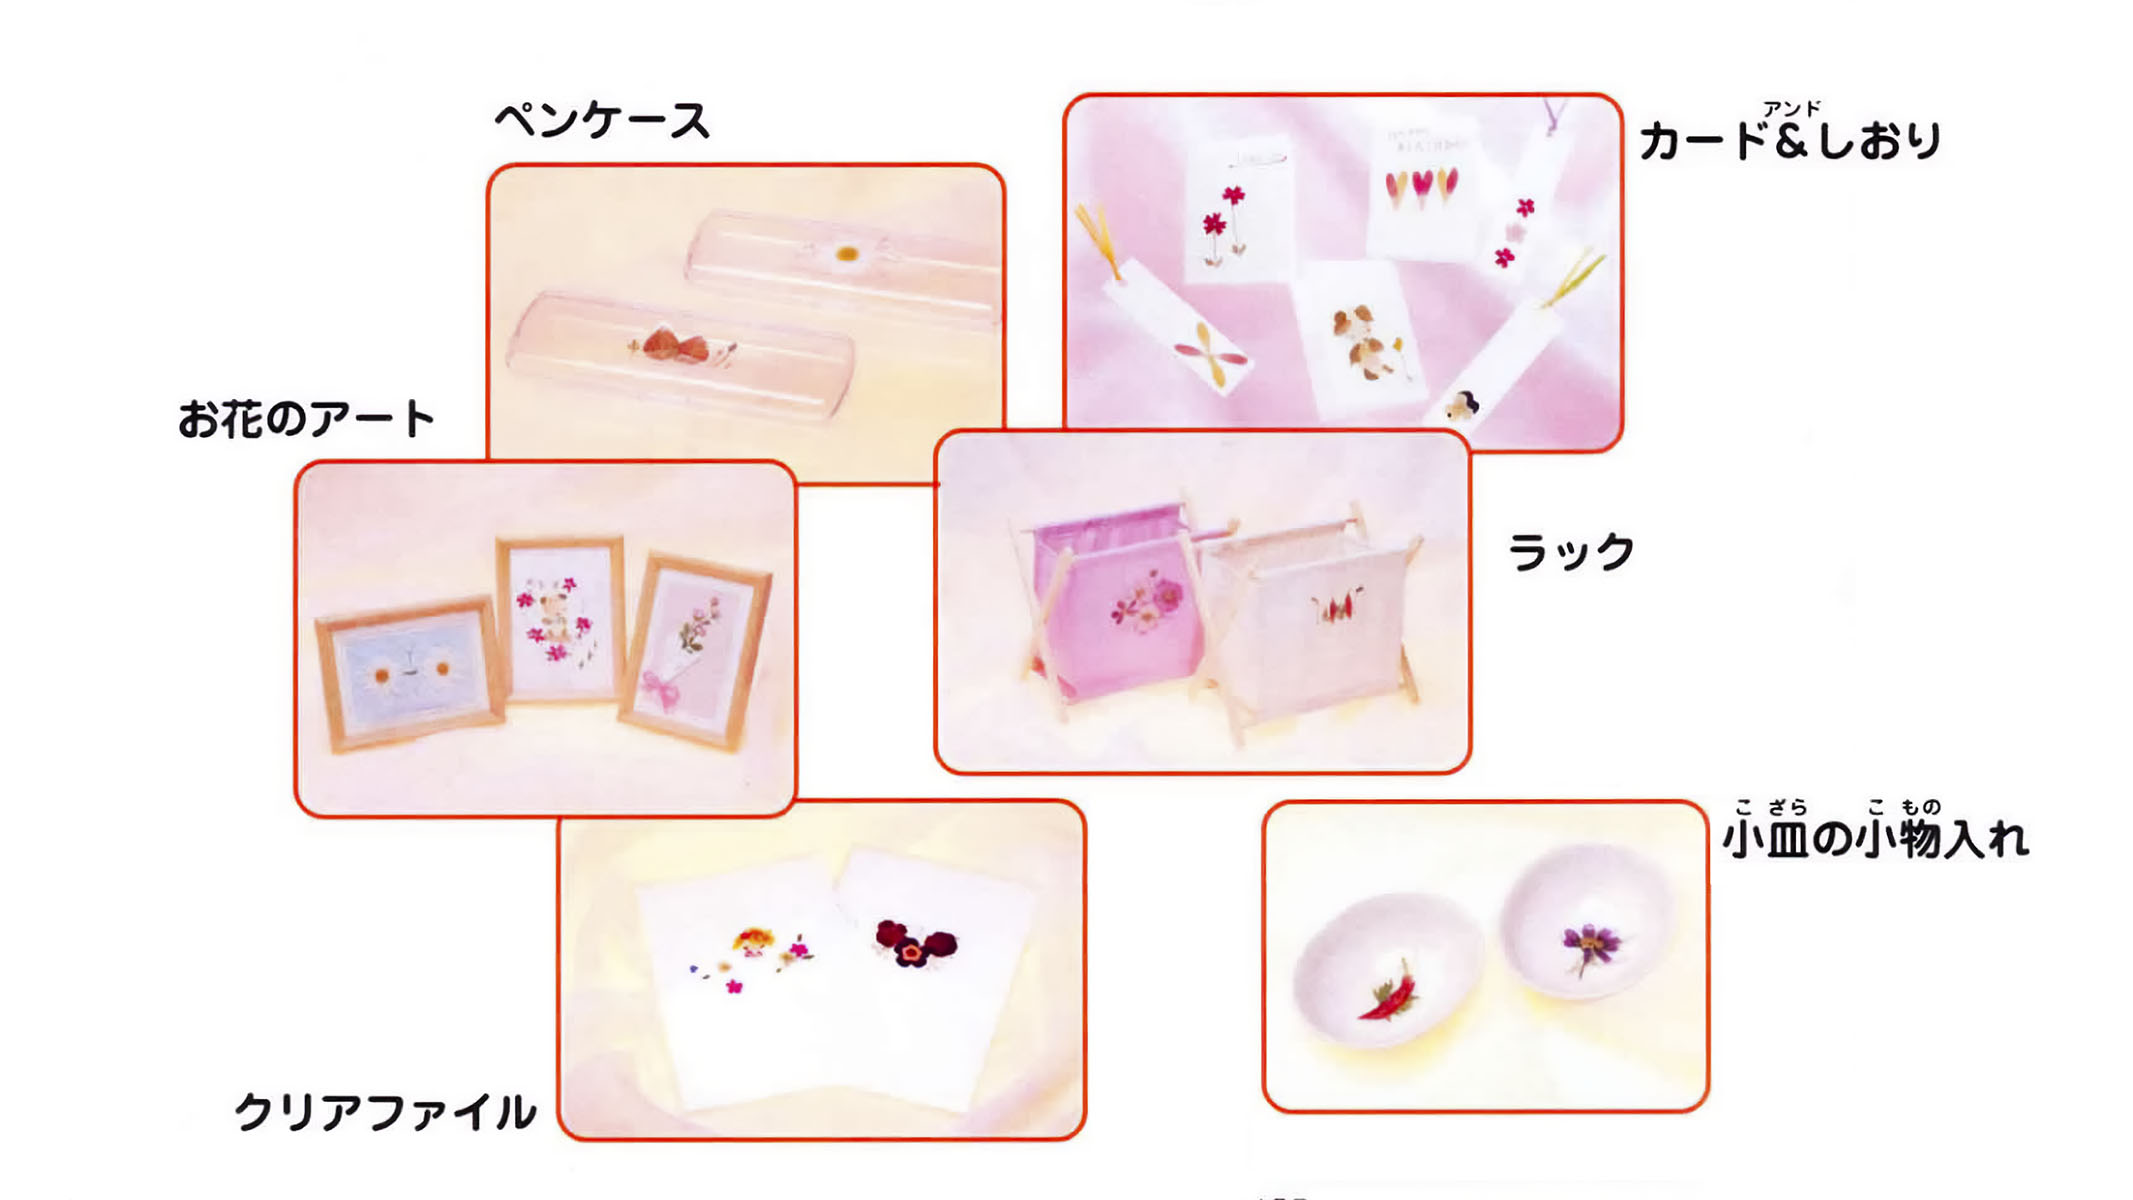 工作 おし<ruby><rb>花</rb><rp>(</rp><rt>ばな</rt><rp>)</rp></ruby>で、おしゃれでかわいい<ruby><rb>小物</rb><rp>(</rp><rt>こもの</rt><rp>)</rp></ruby><ruby><rb>作</rb><rp>(</rp><rt>づく</rt><rp>)</rp></ruby>り